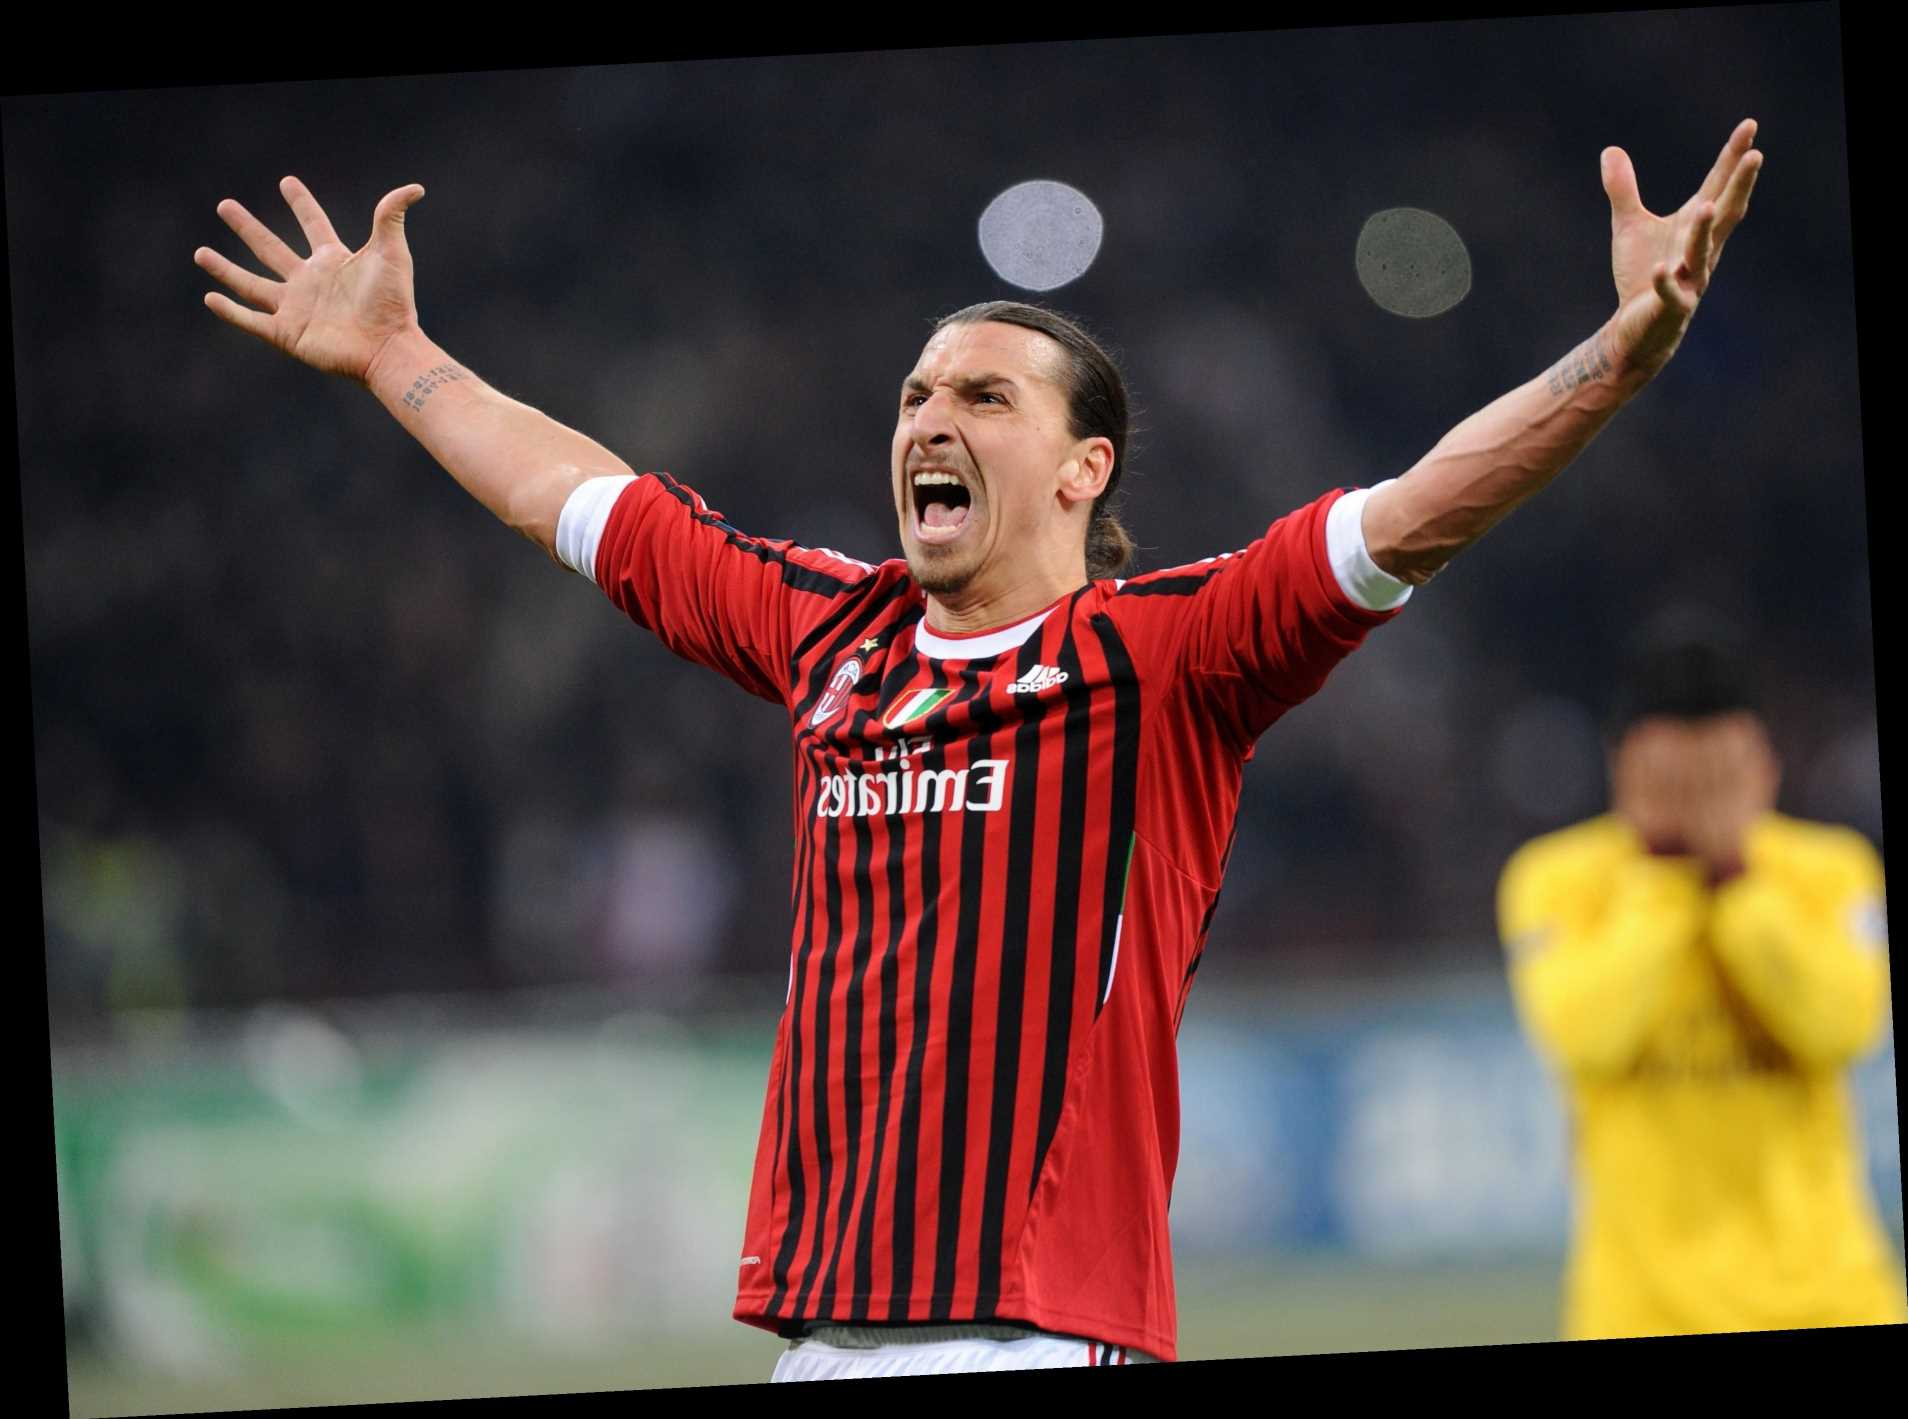 Zlatan Ibrahimovic agrees to AC Milan return despite Premier League transfer interest – The Sun